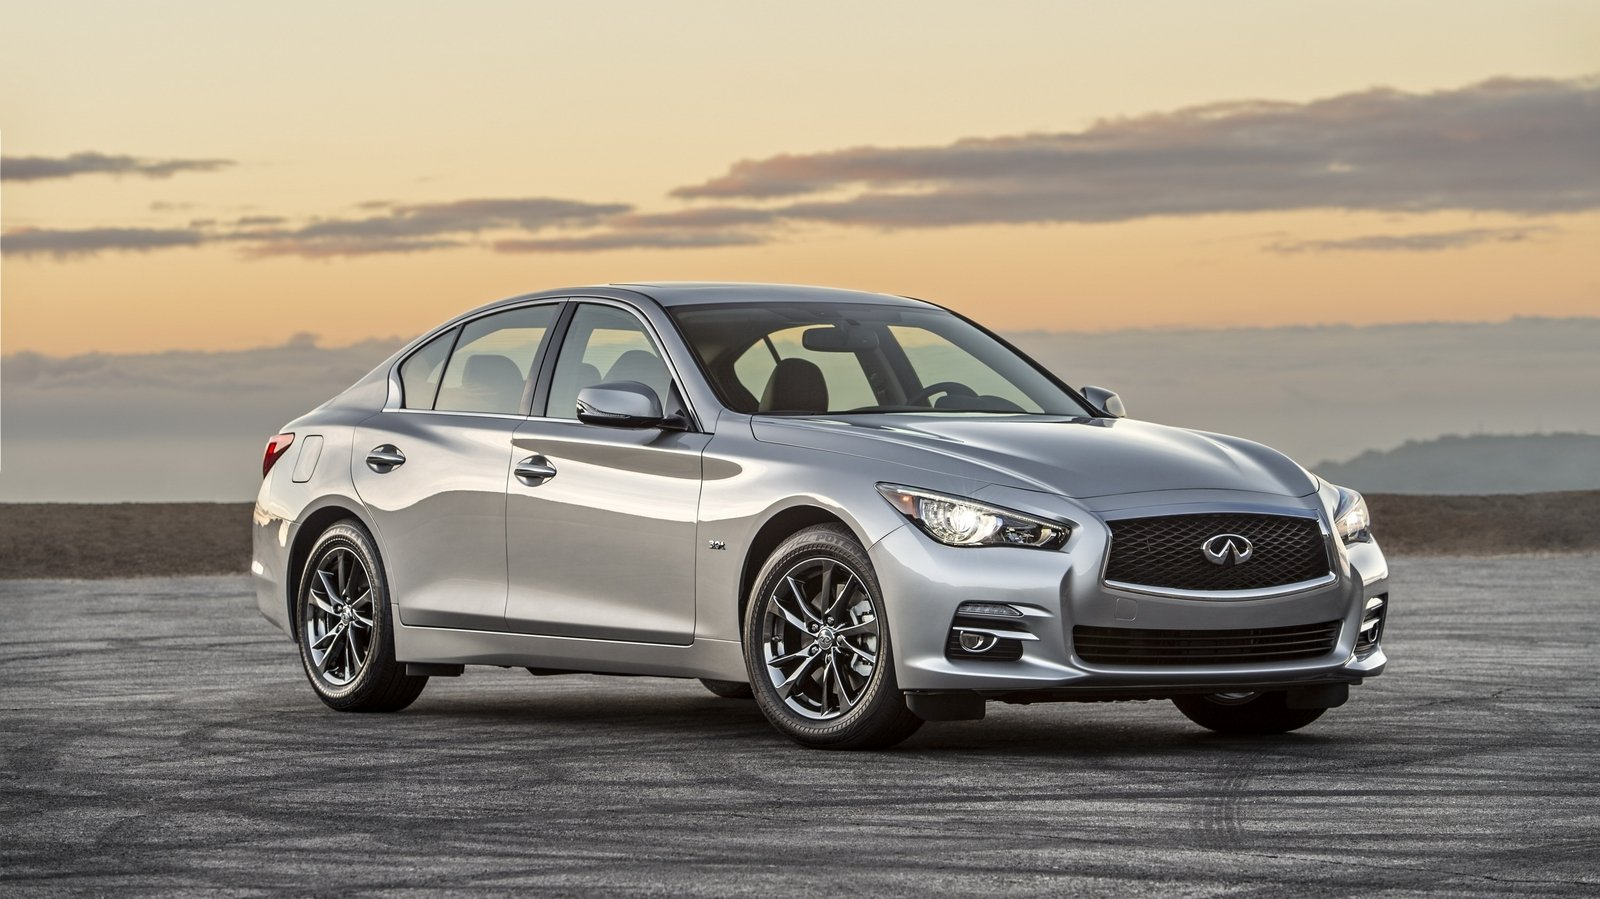 2017 infiniti q50 signature edition picture 704790 car review top speed. Black Bedroom Furniture Sets. Home Design Ideas